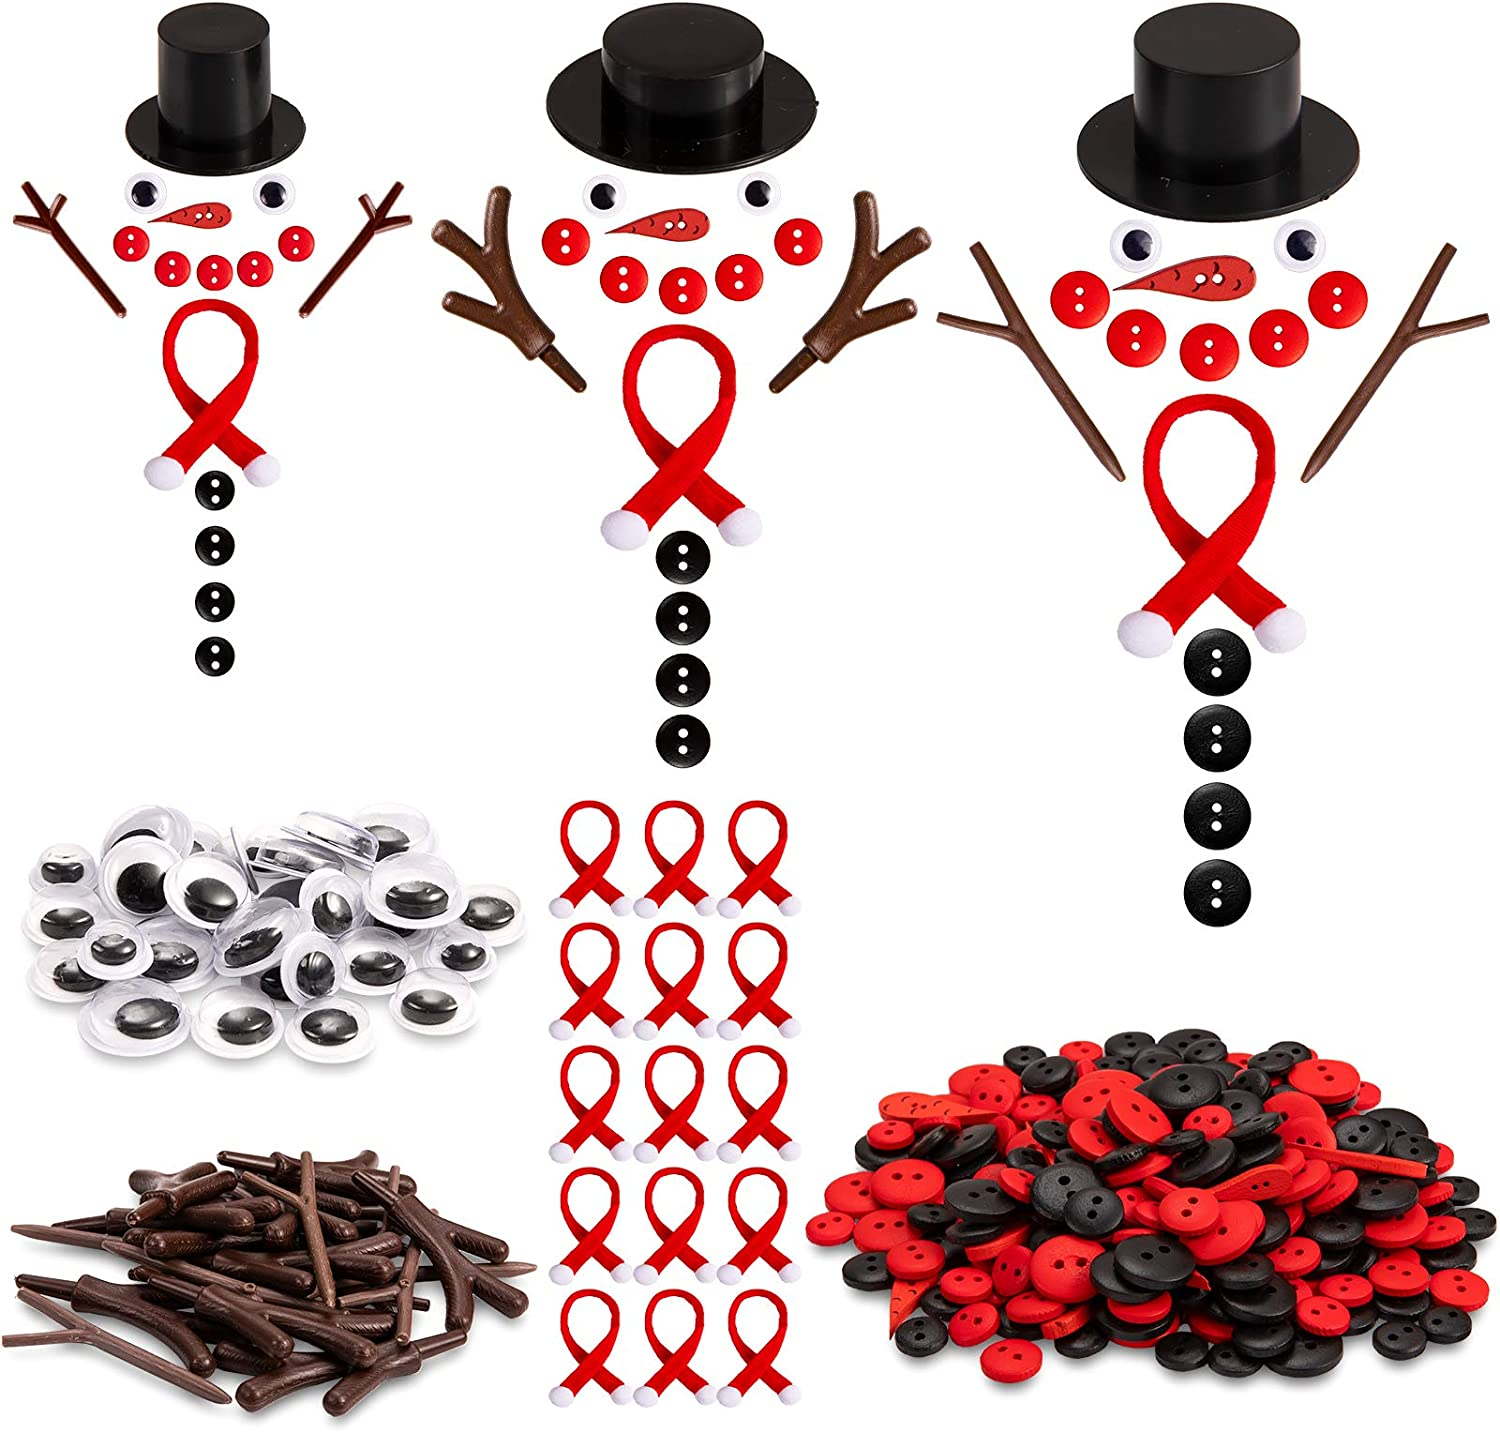 Whaline 345pcs Christmas DIY Snowman Ornament Button Craft Ornament Mini Kit with Plastic Hat Plastic Branches Hands Black Wooden Button Red Button Carrot Nose Plastic Eyes Scarves Xmas Party Decor